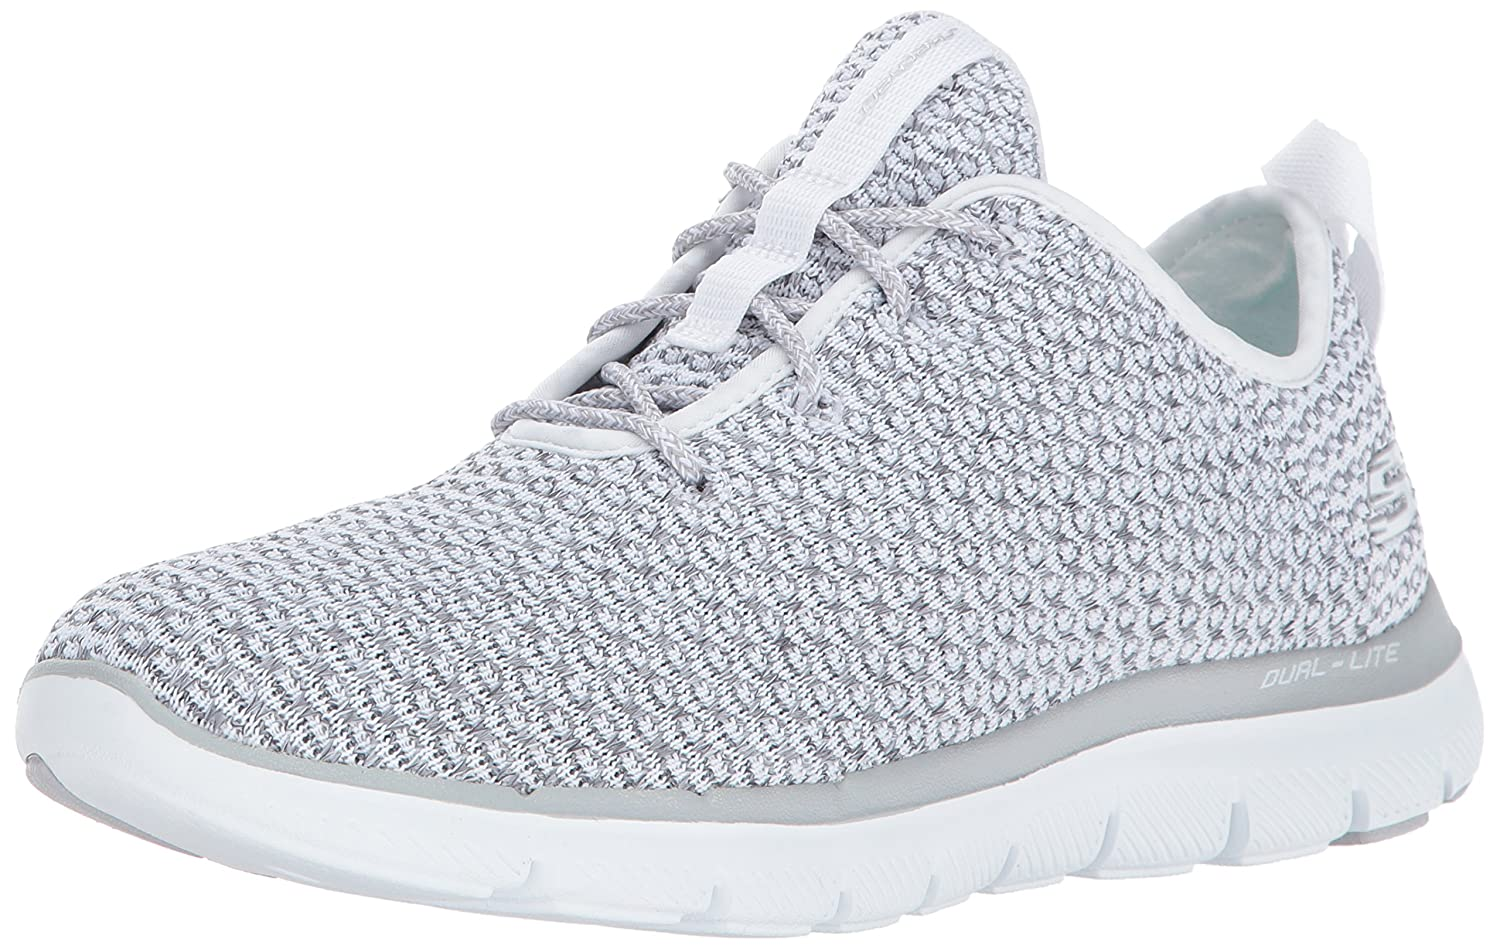 Skechers Sport Women's Flex Appeal 2.0 Bold Move Fashion Sneaker B01N8YQSKB 9.5 B(M) US|White Grey